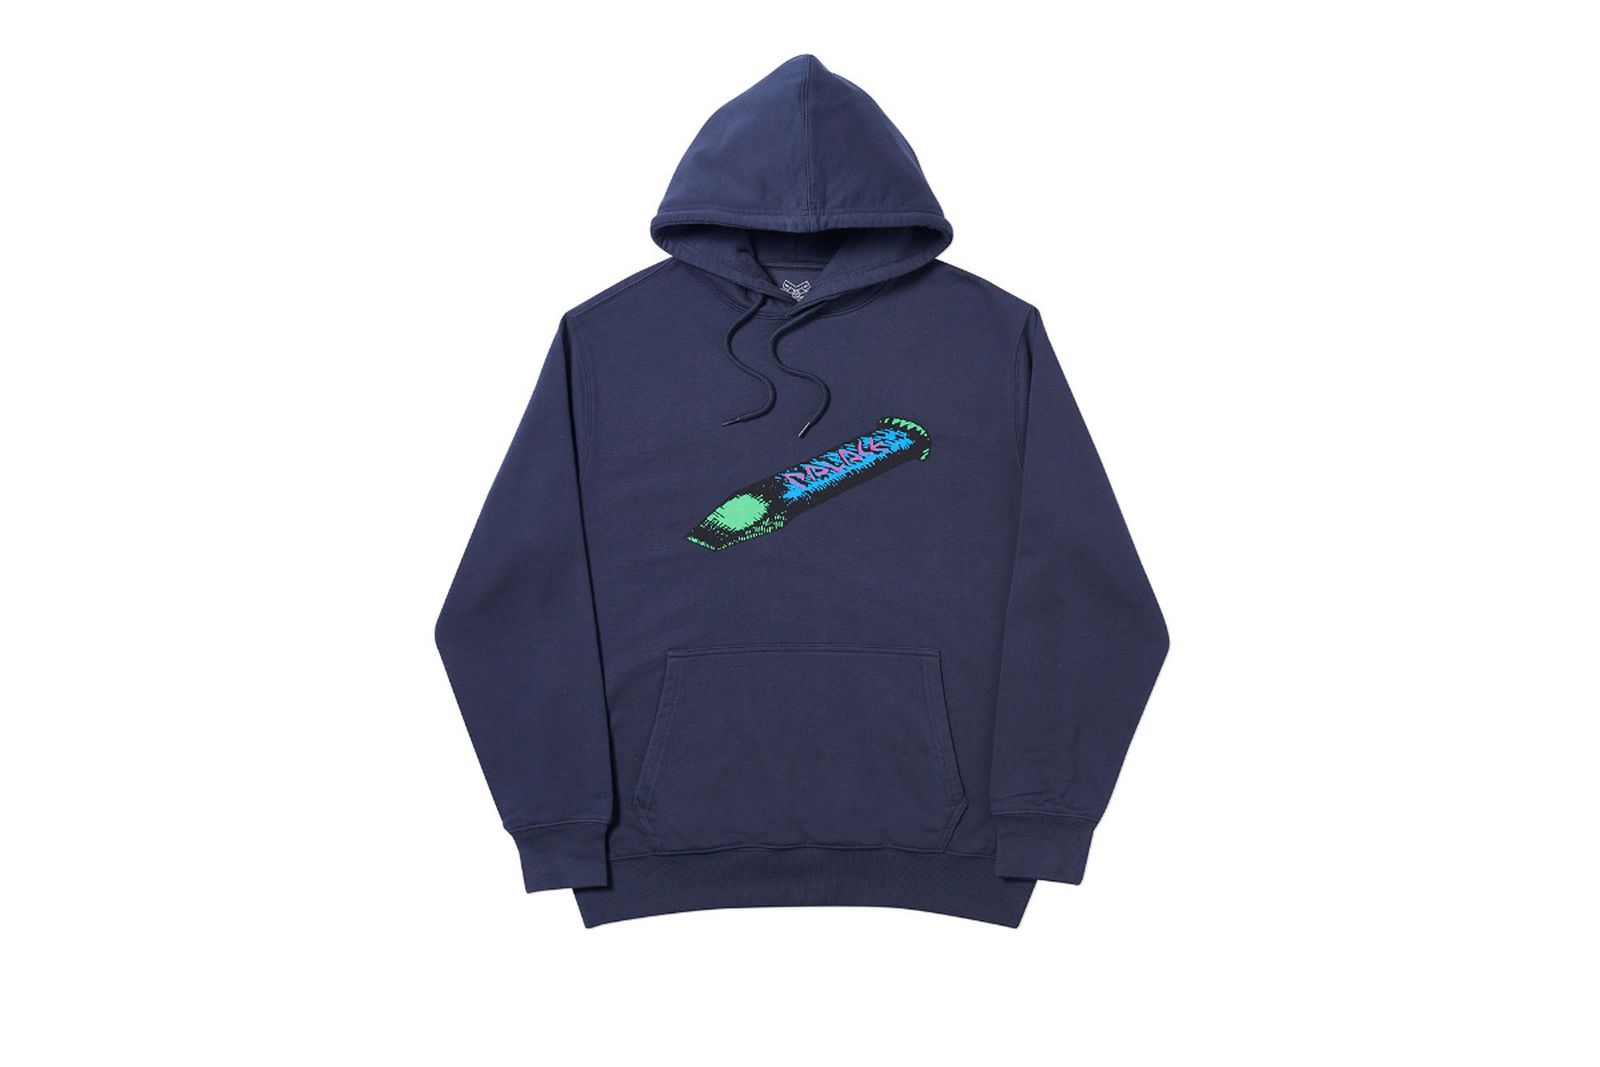 Palace 2019 Autumn Hood Chizzle Up navy front